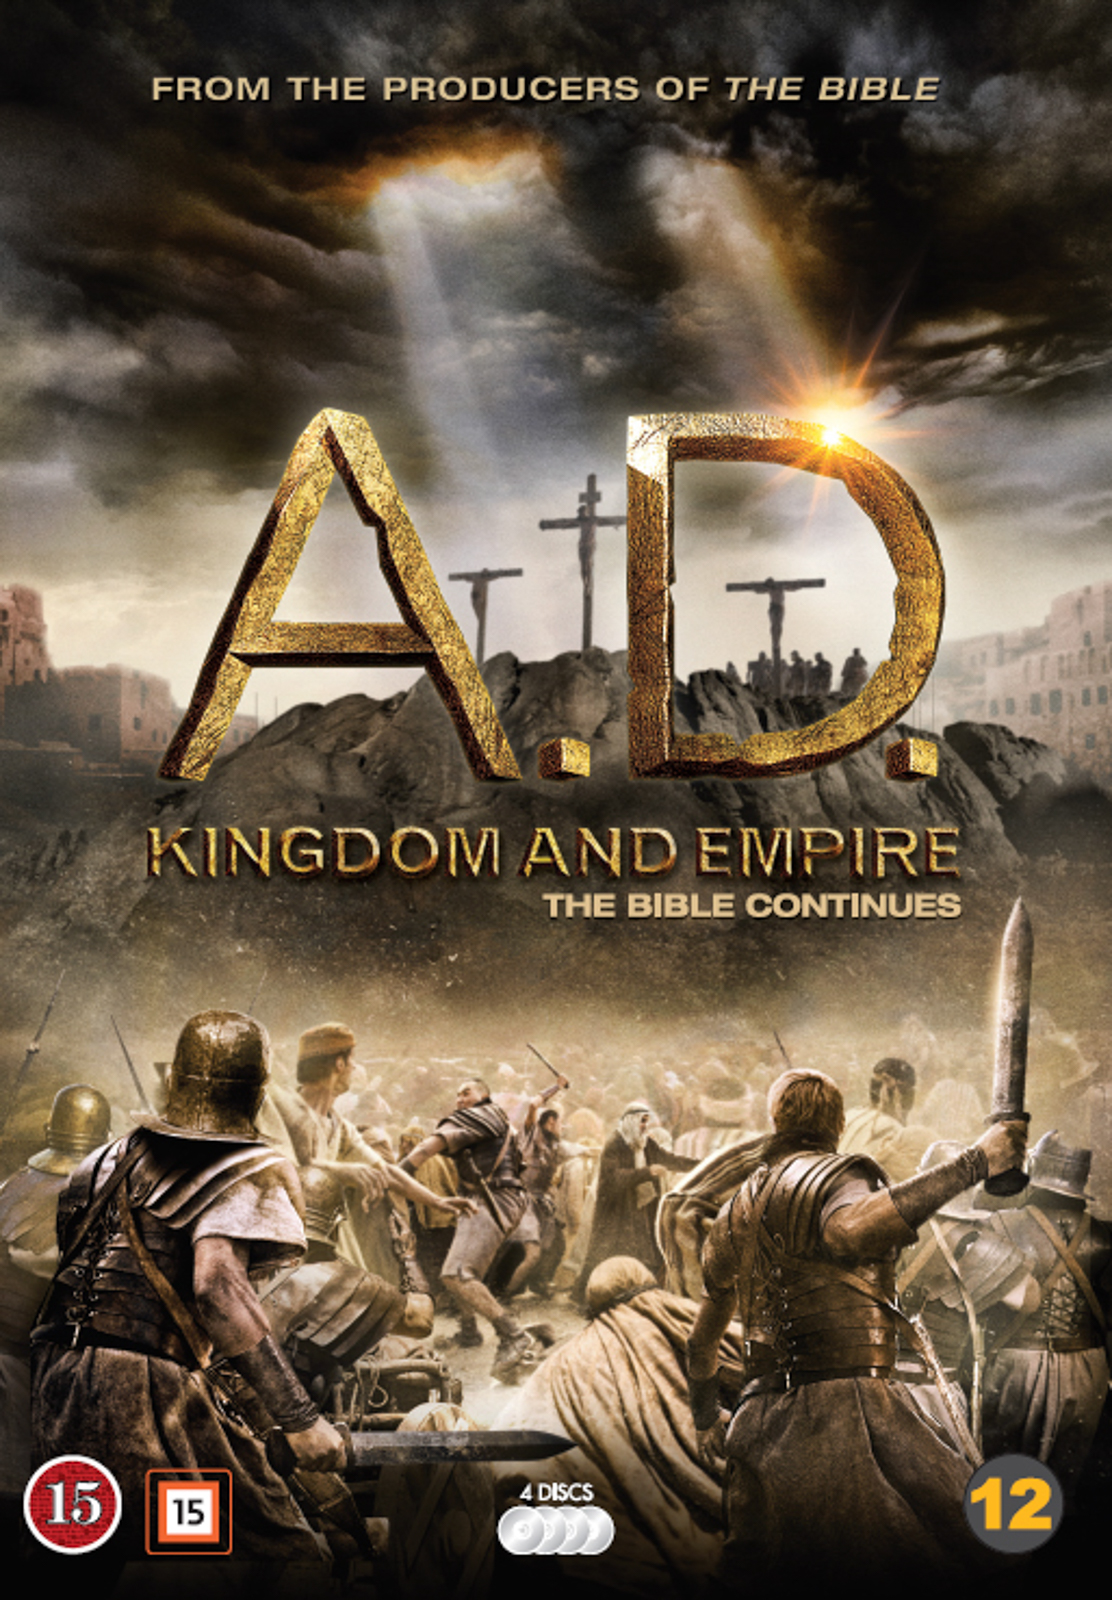 A.D. the Bible continues (2015) Bokomslag